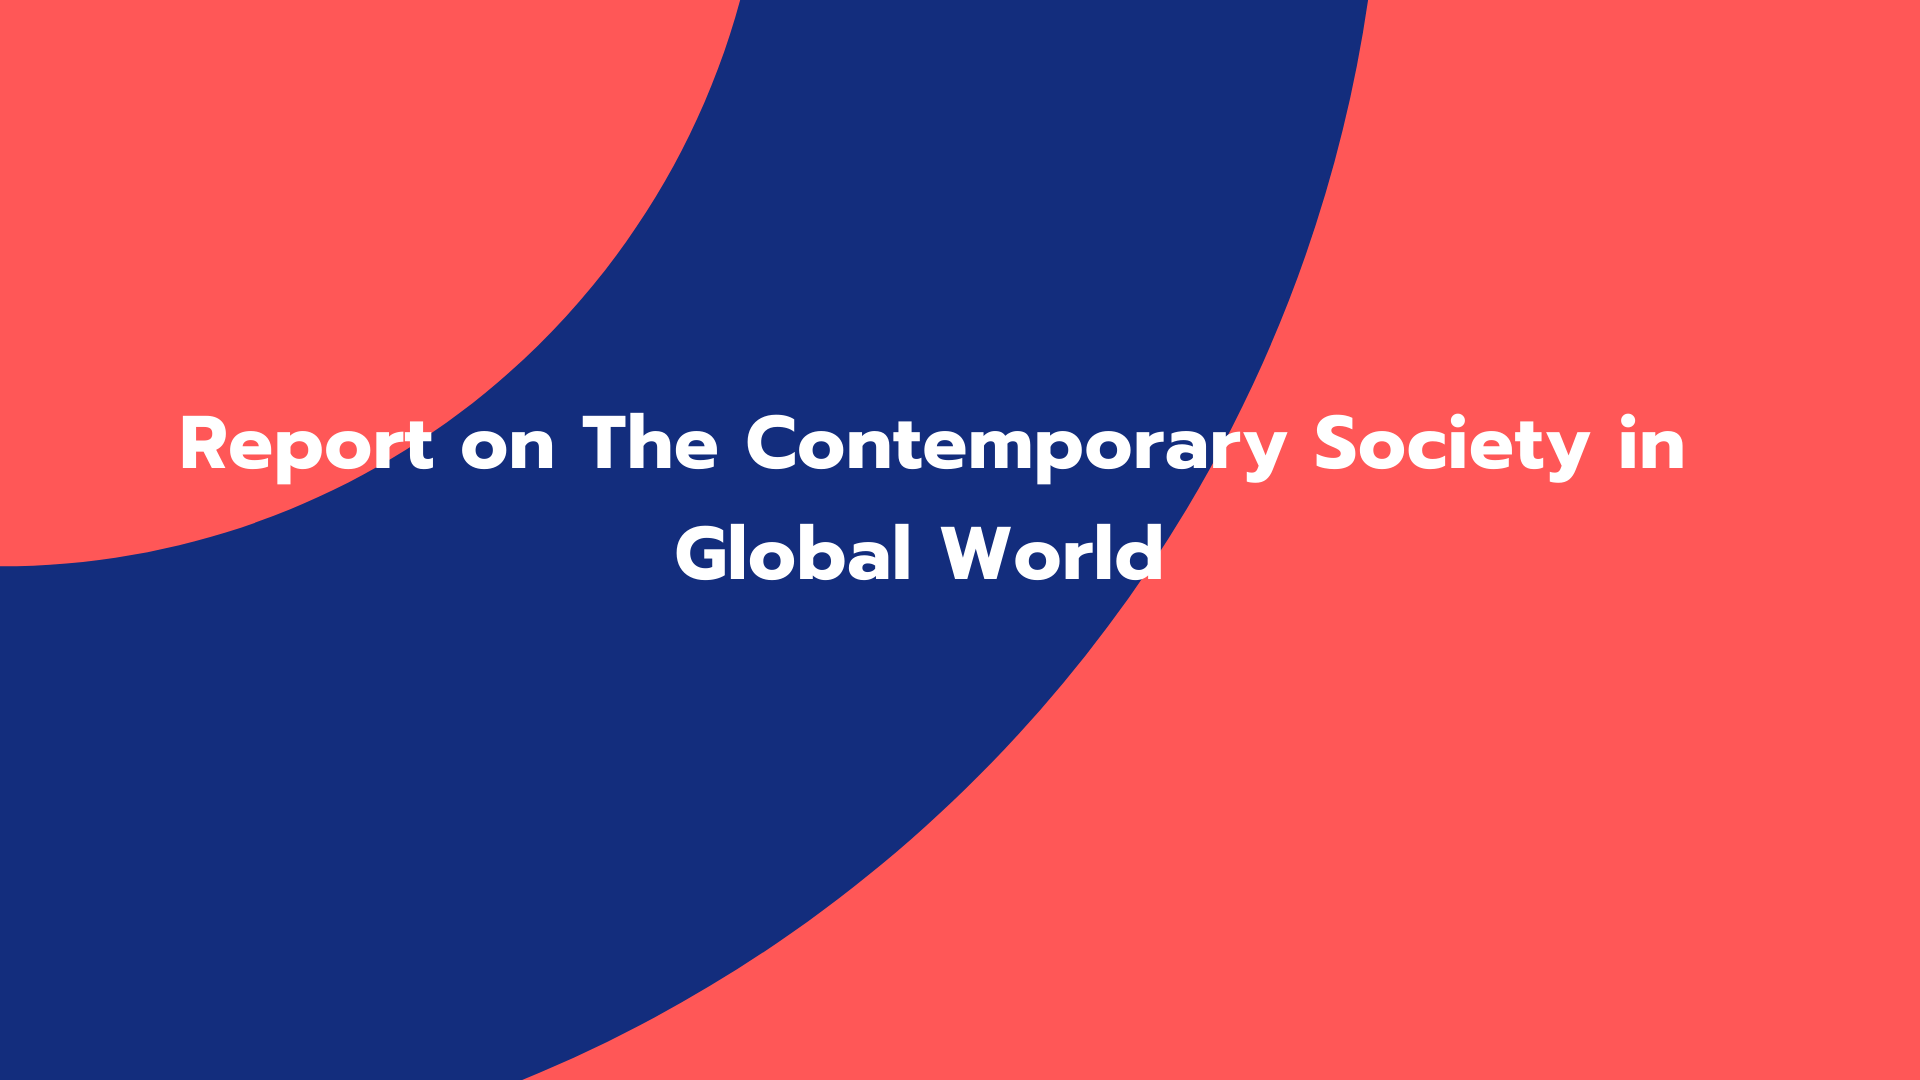 Report on The Contemporary Society in Global World